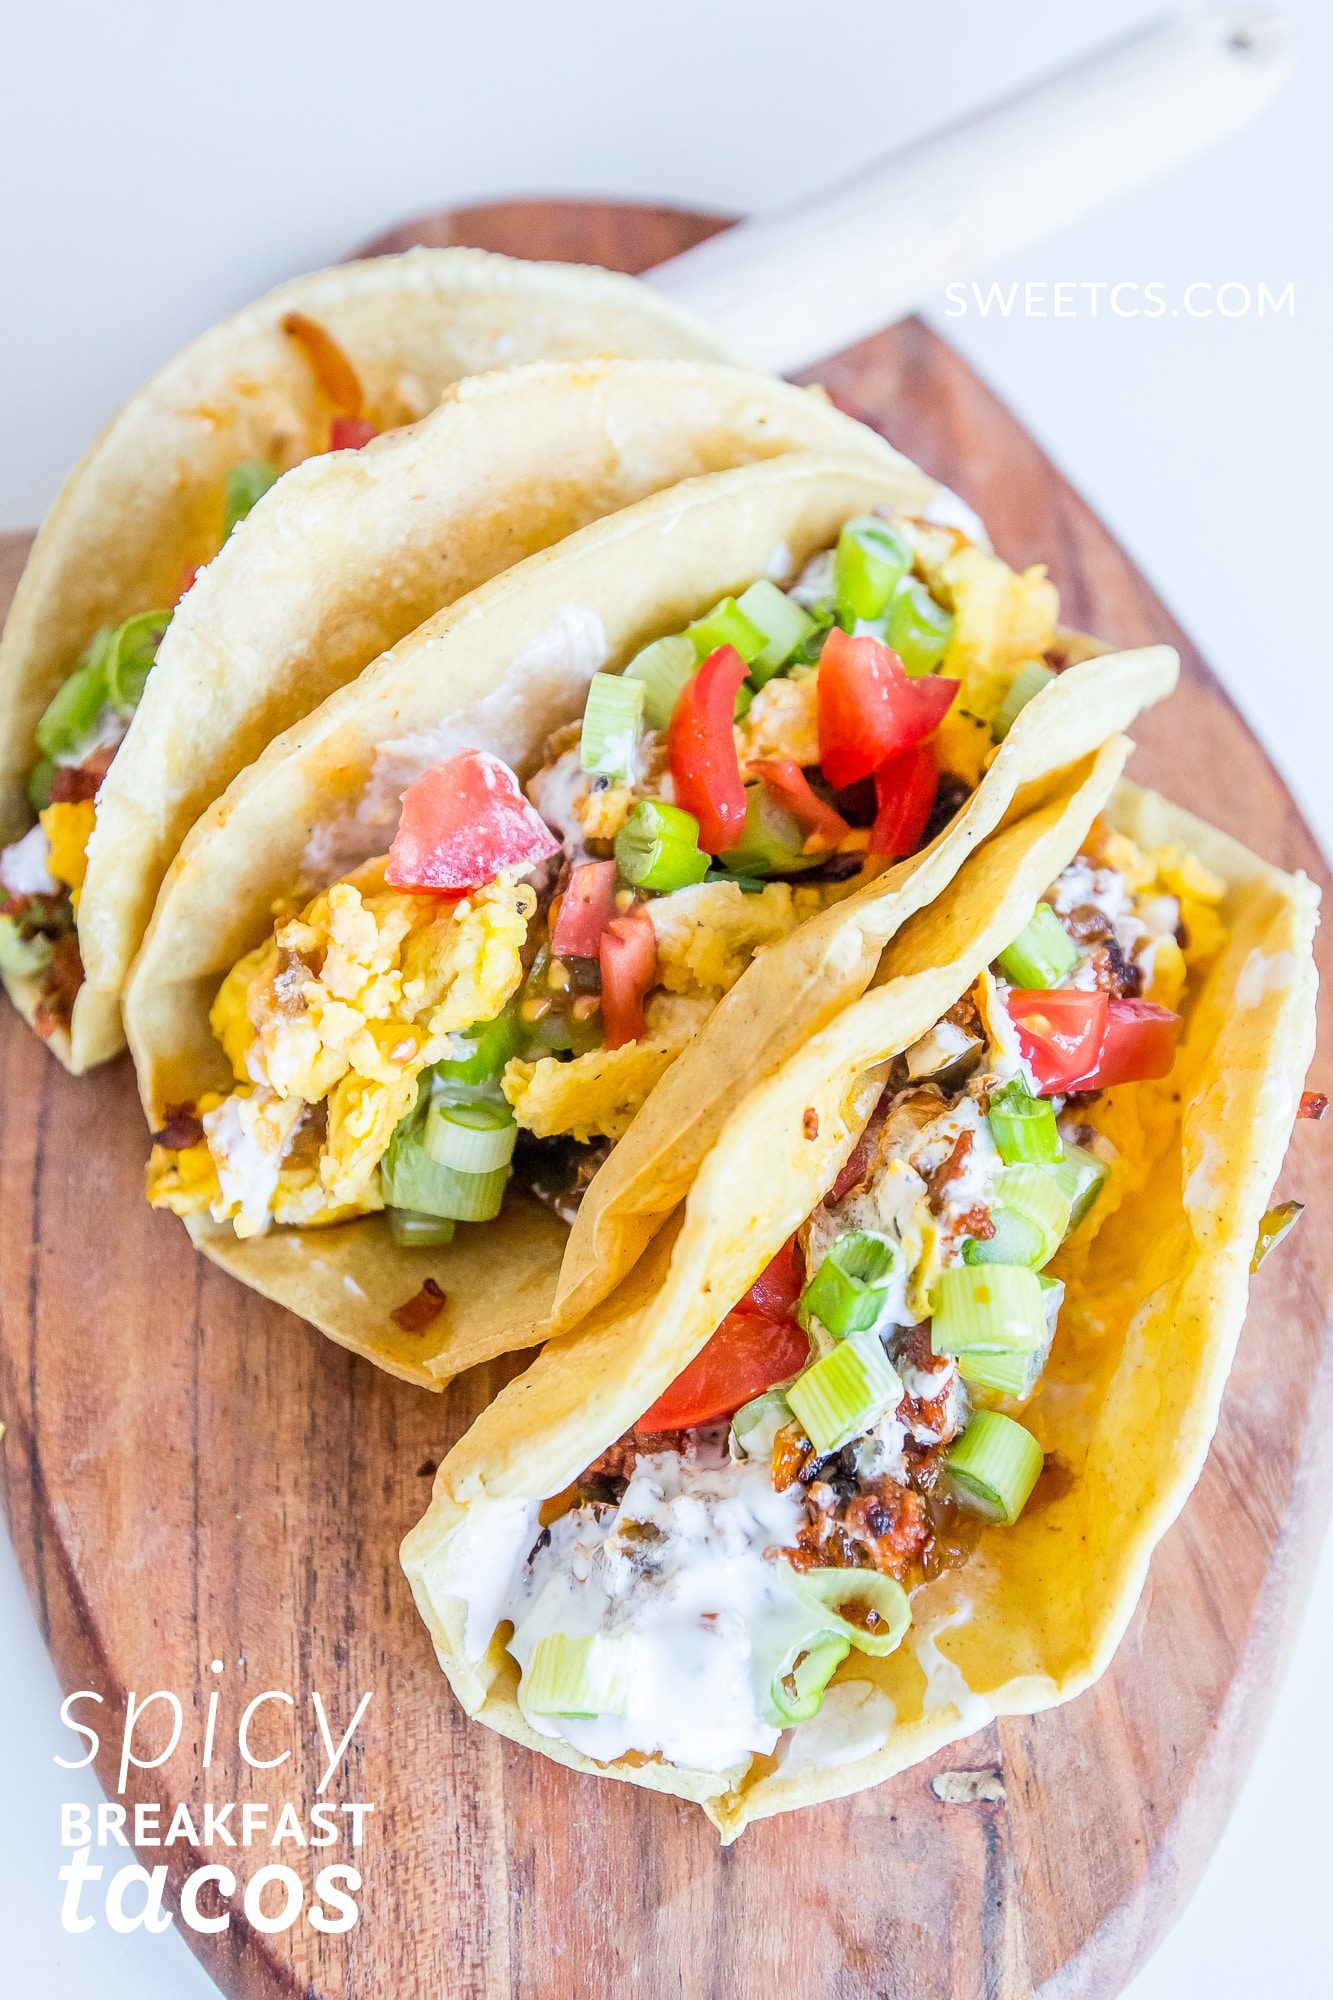 spicy breakfast tacos- these are so easy and delicious!